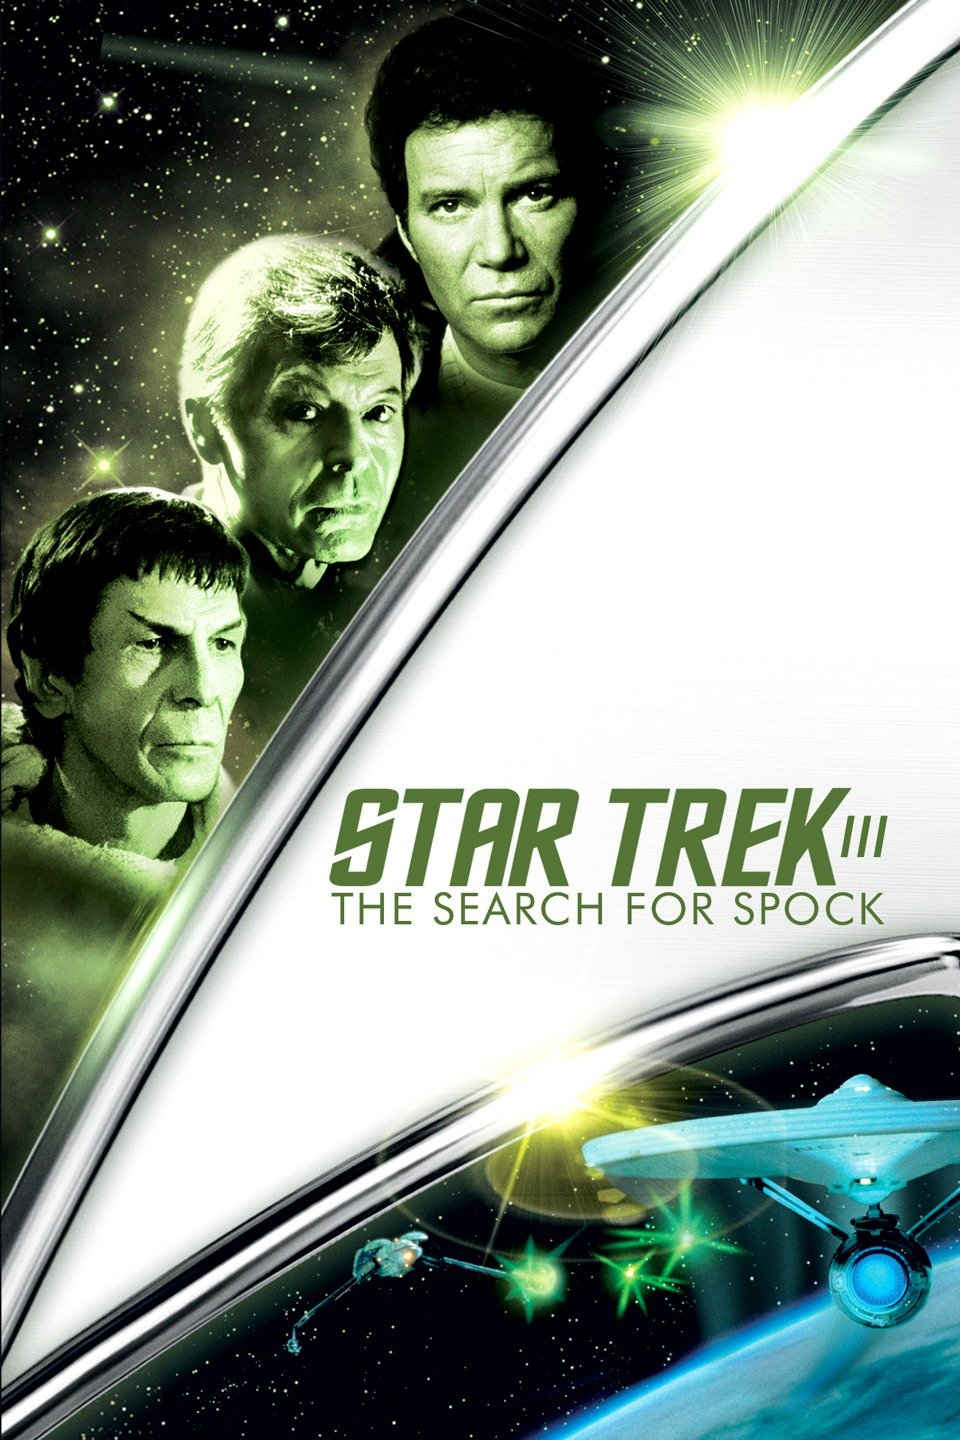 Star Trek III: The Search for Spock-Star Trek III: The Search for Spock